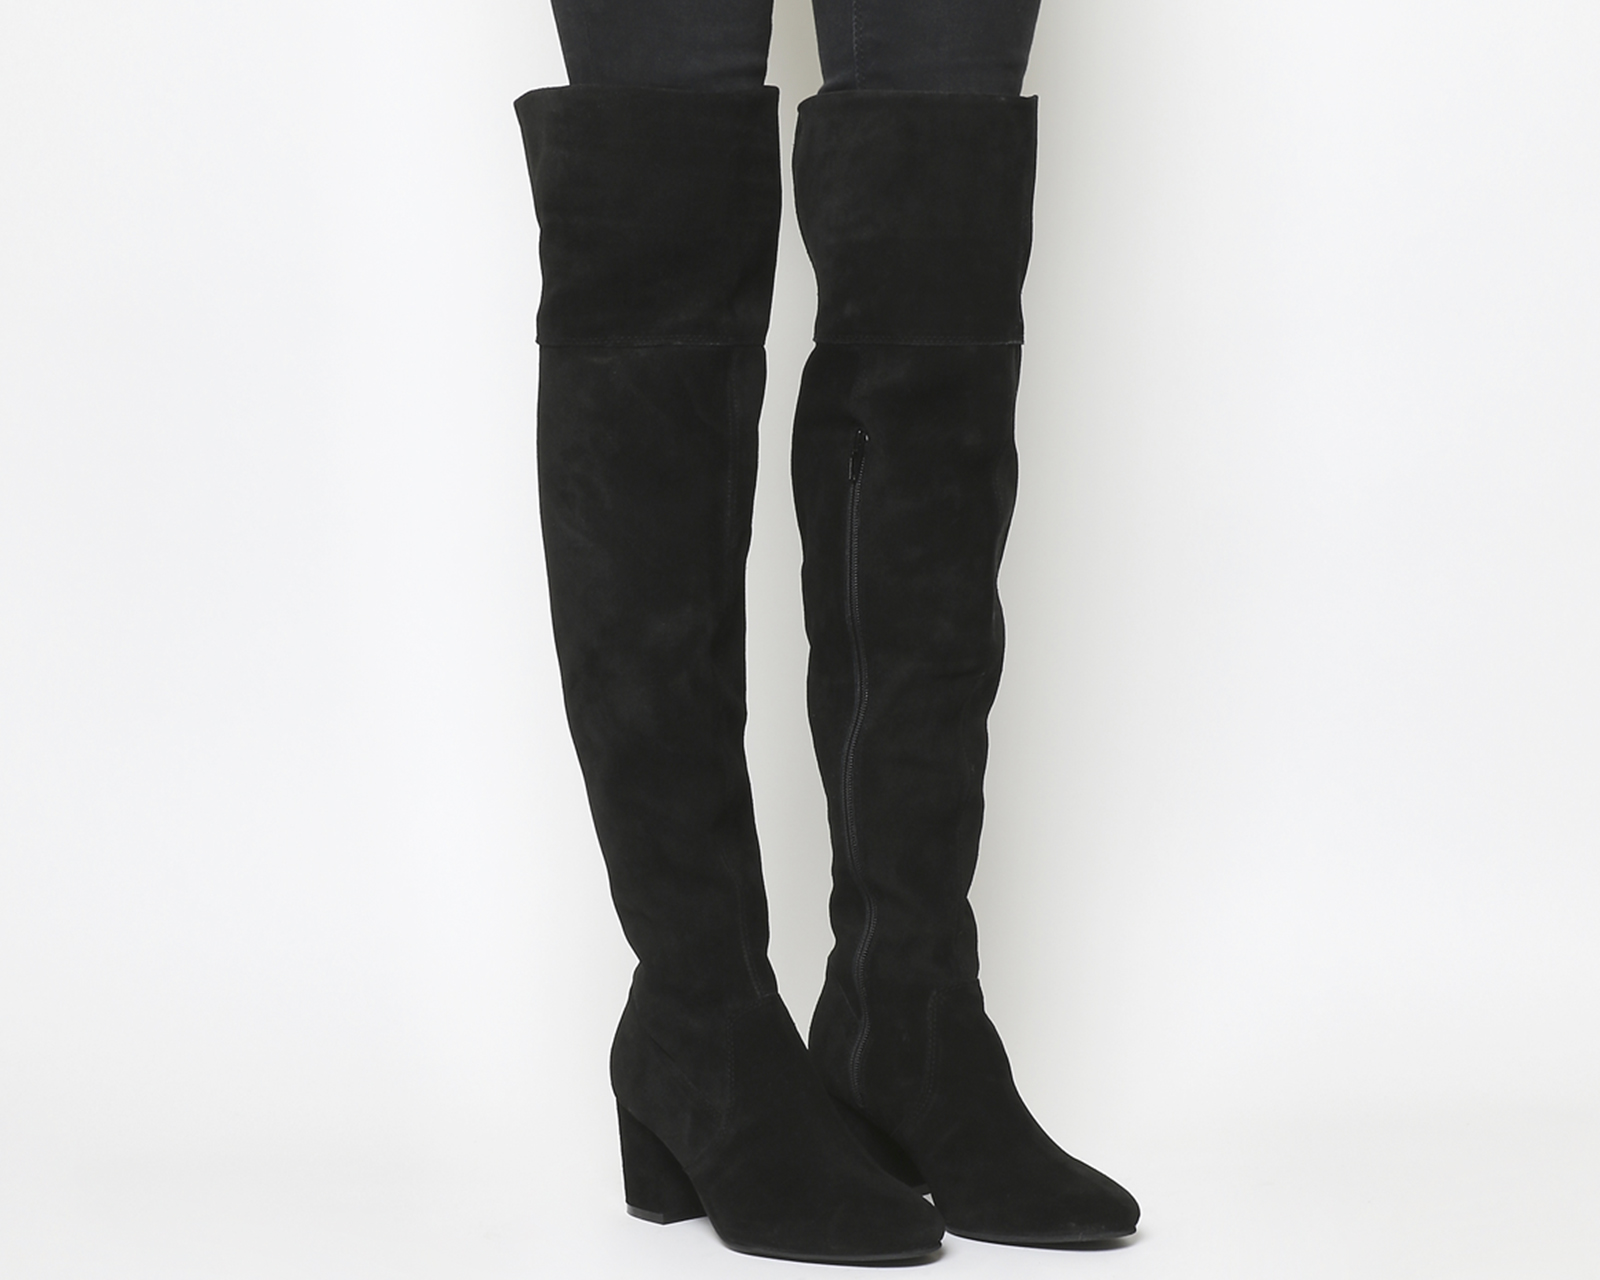 Womens Office Krissy Over The Knee Boots Boots Boots BLACK SUEDE Boots a1c9e0